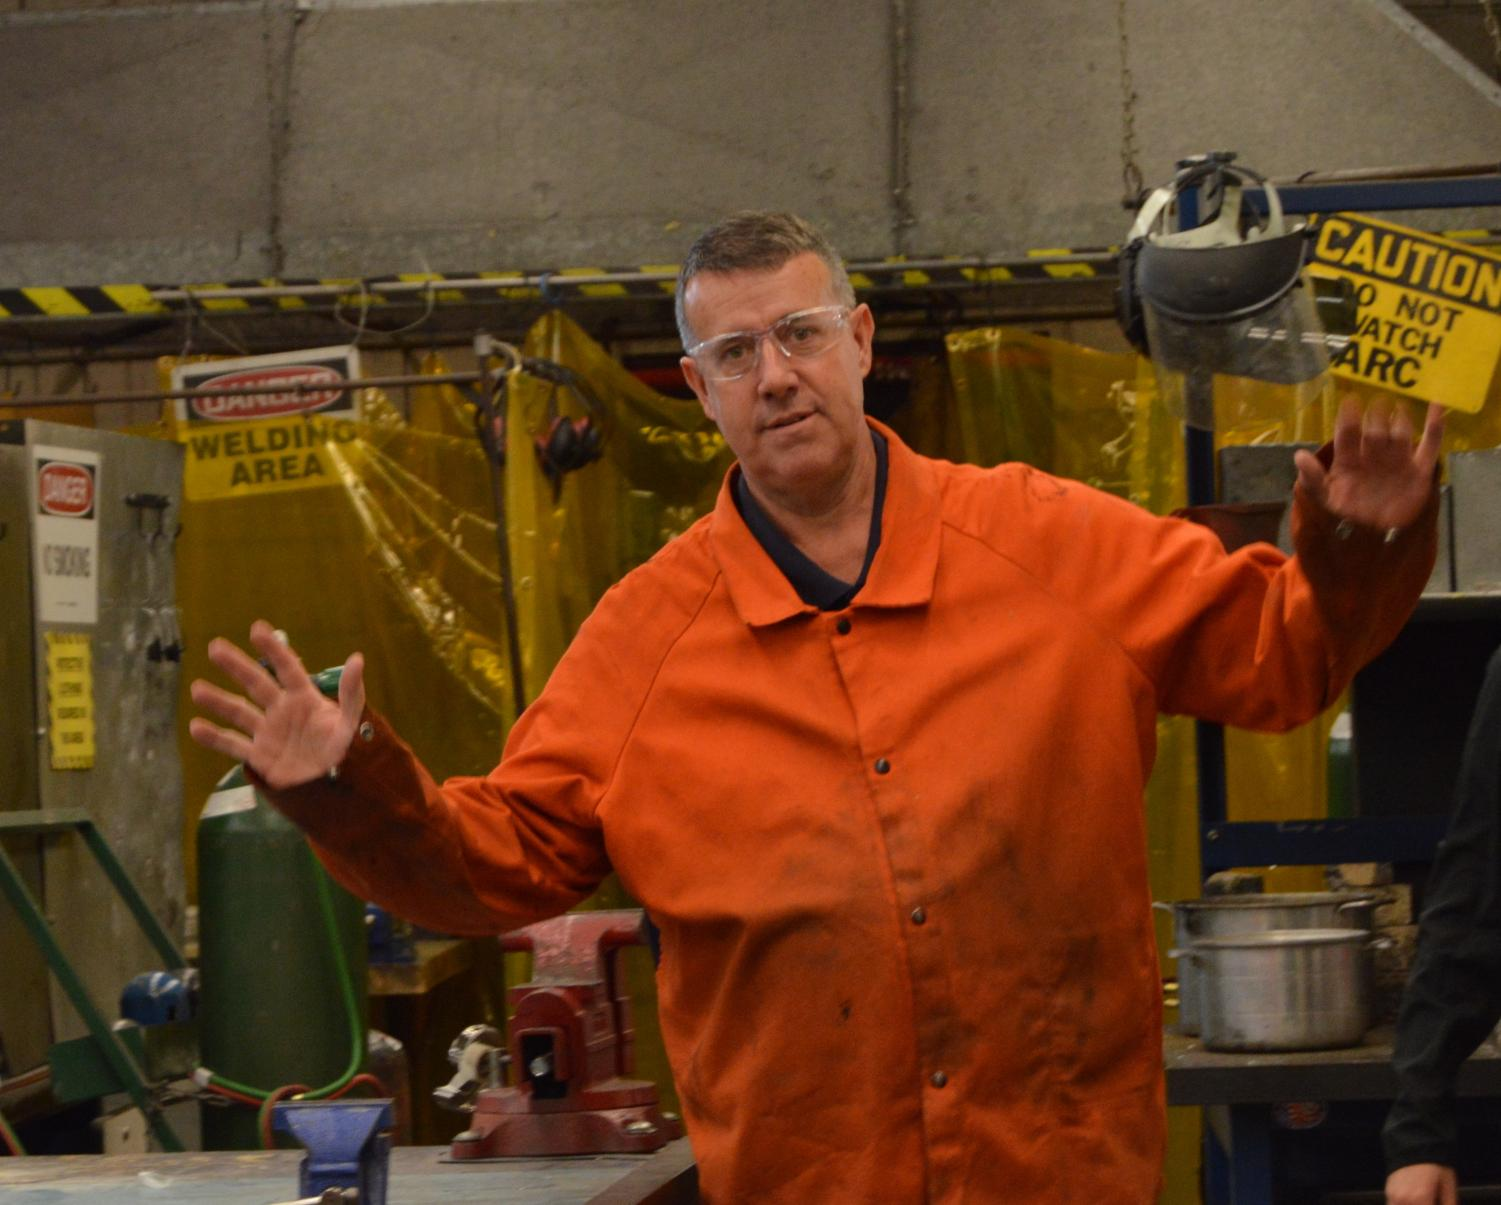 Last year's Teacher of the Year, Mr. Decloux, poses for a photo during his metals class.